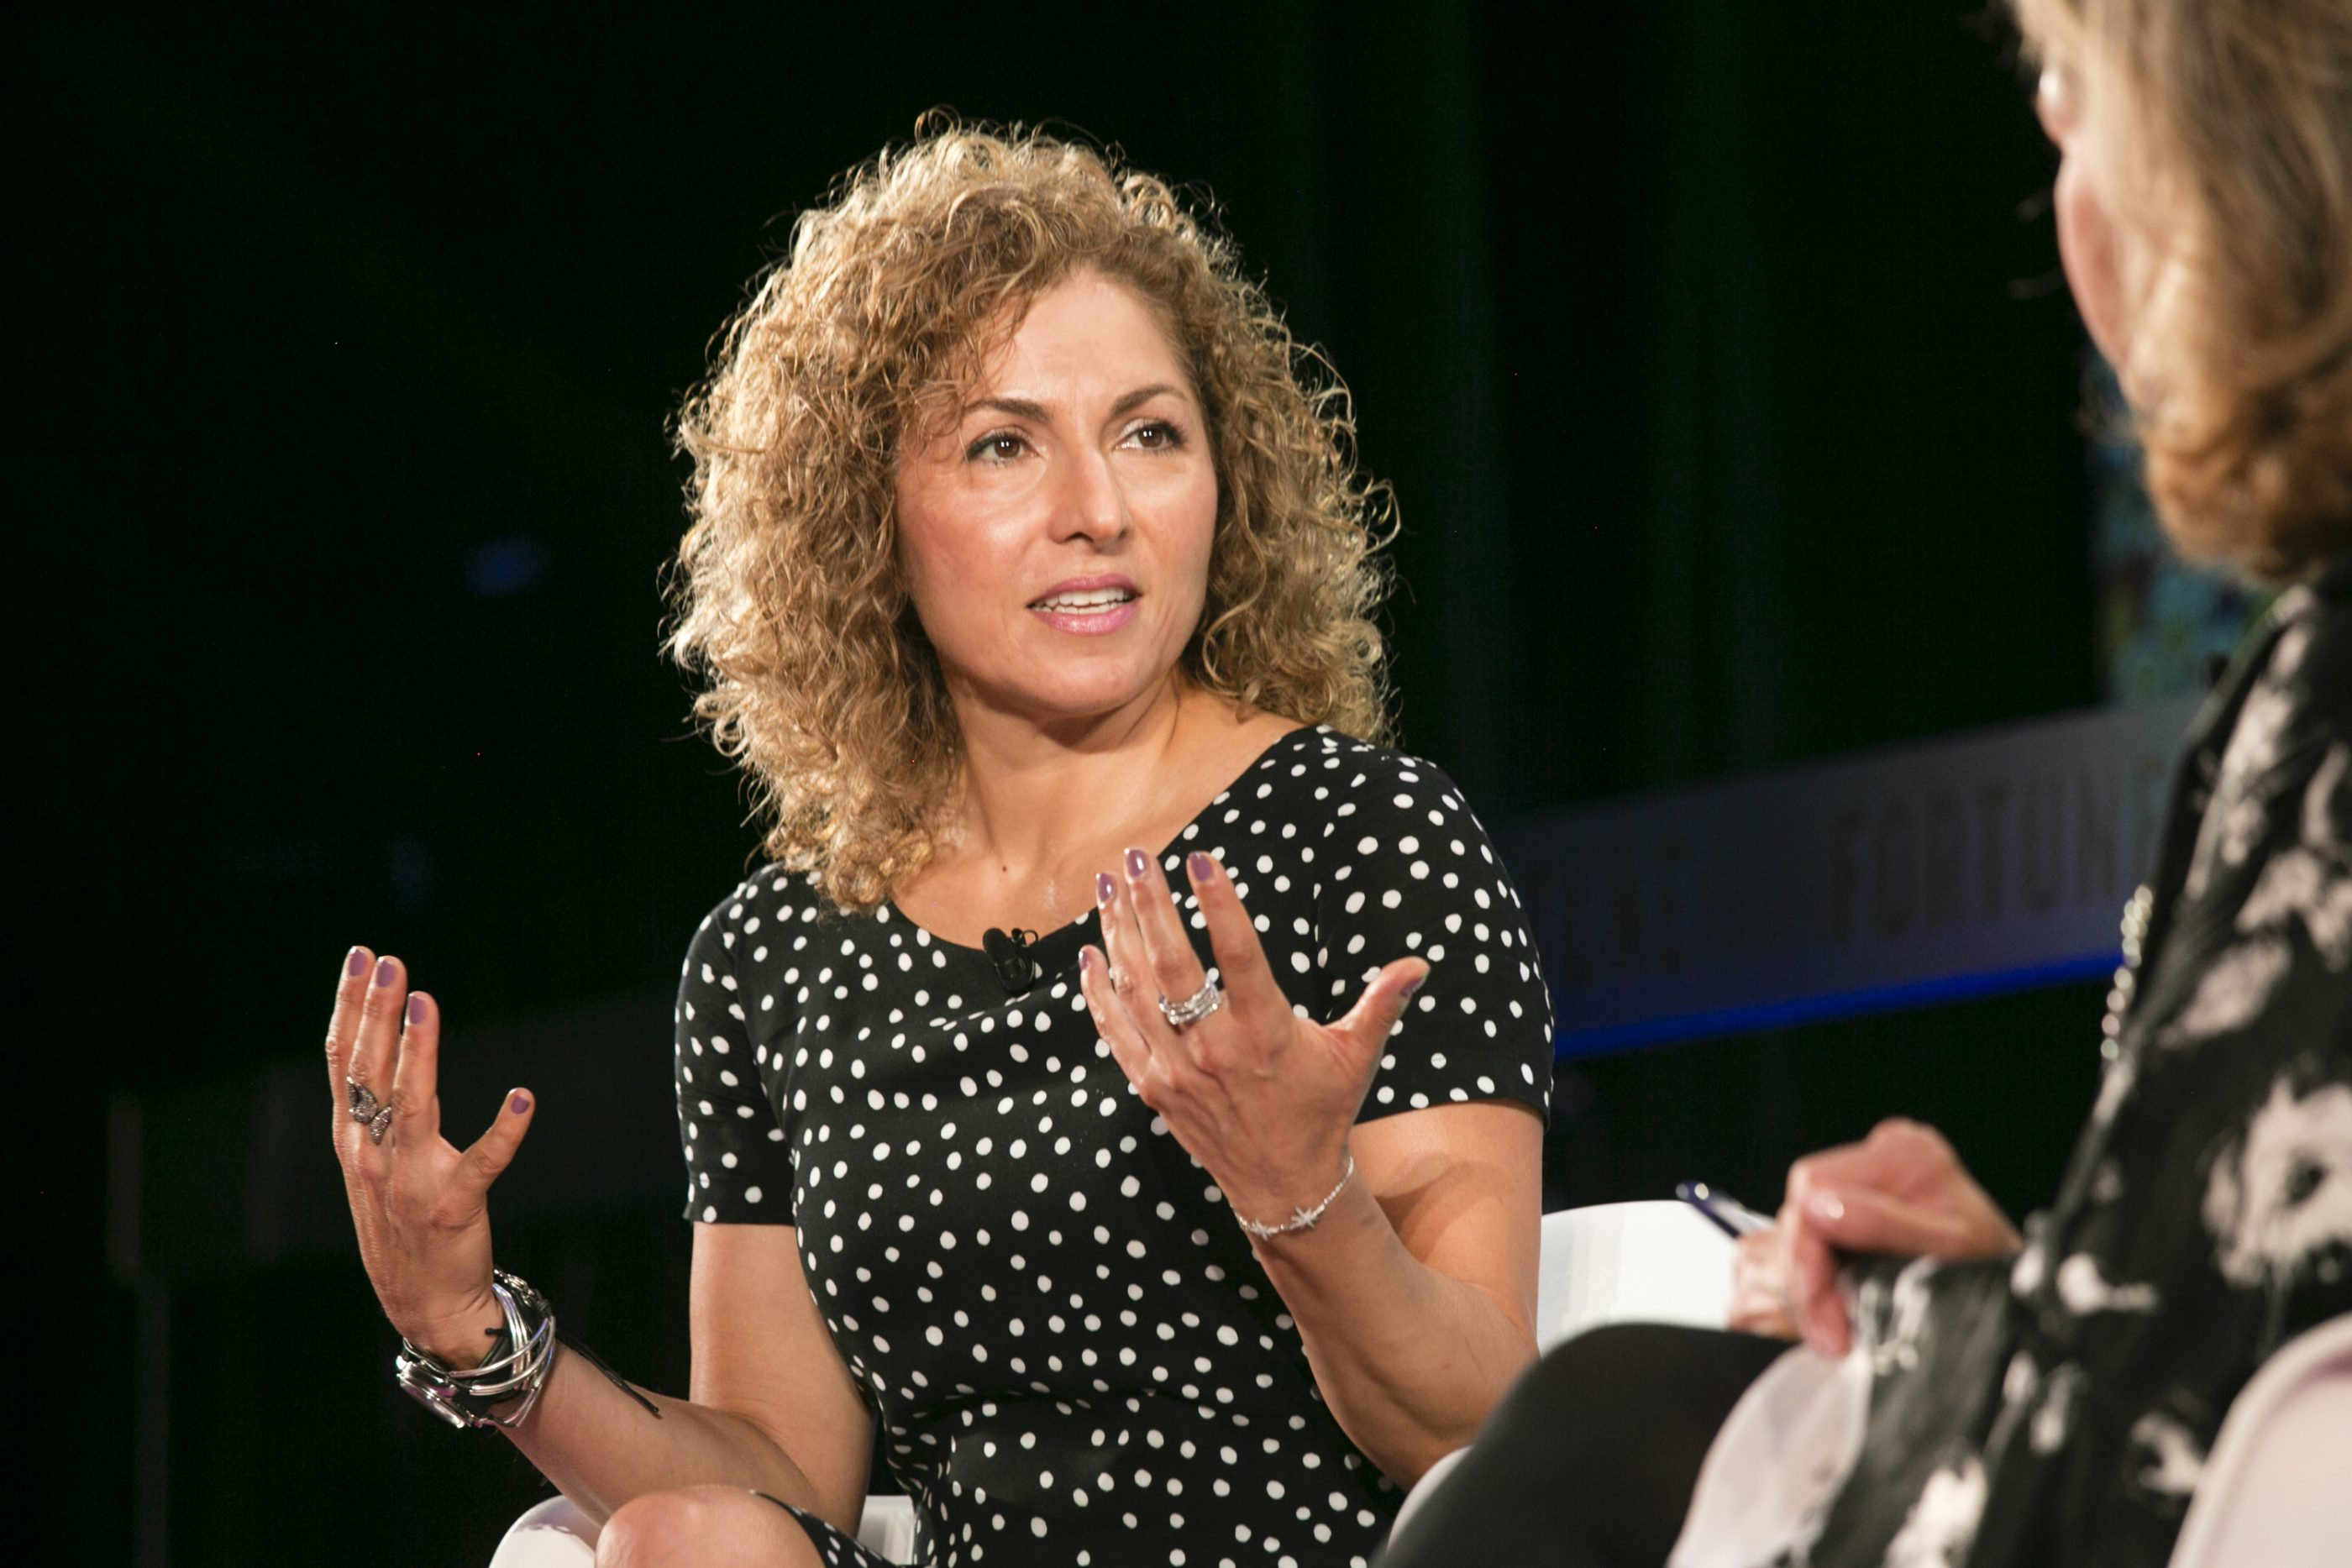 XPRIZE CEO Anousheh Ansari on stage at Fortune's Most Powerful Women International Summit in Toronto on September 17, 2019.